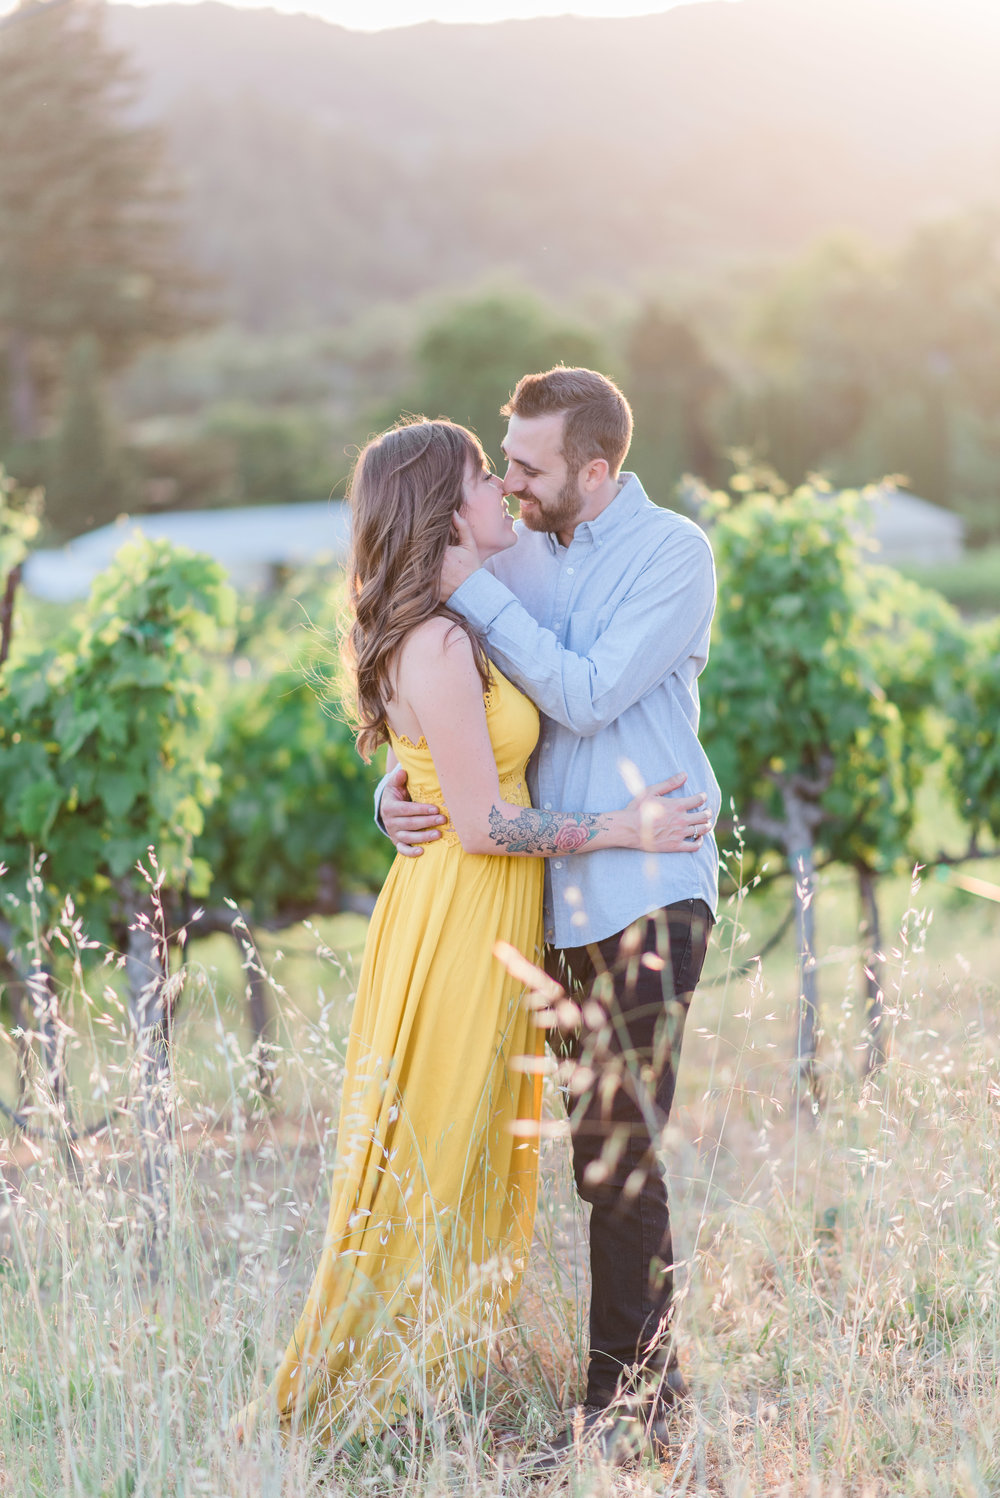 Ber+Jeff45_KelliPricePhotography_HealdsburgCA_June2018 copy.jpg